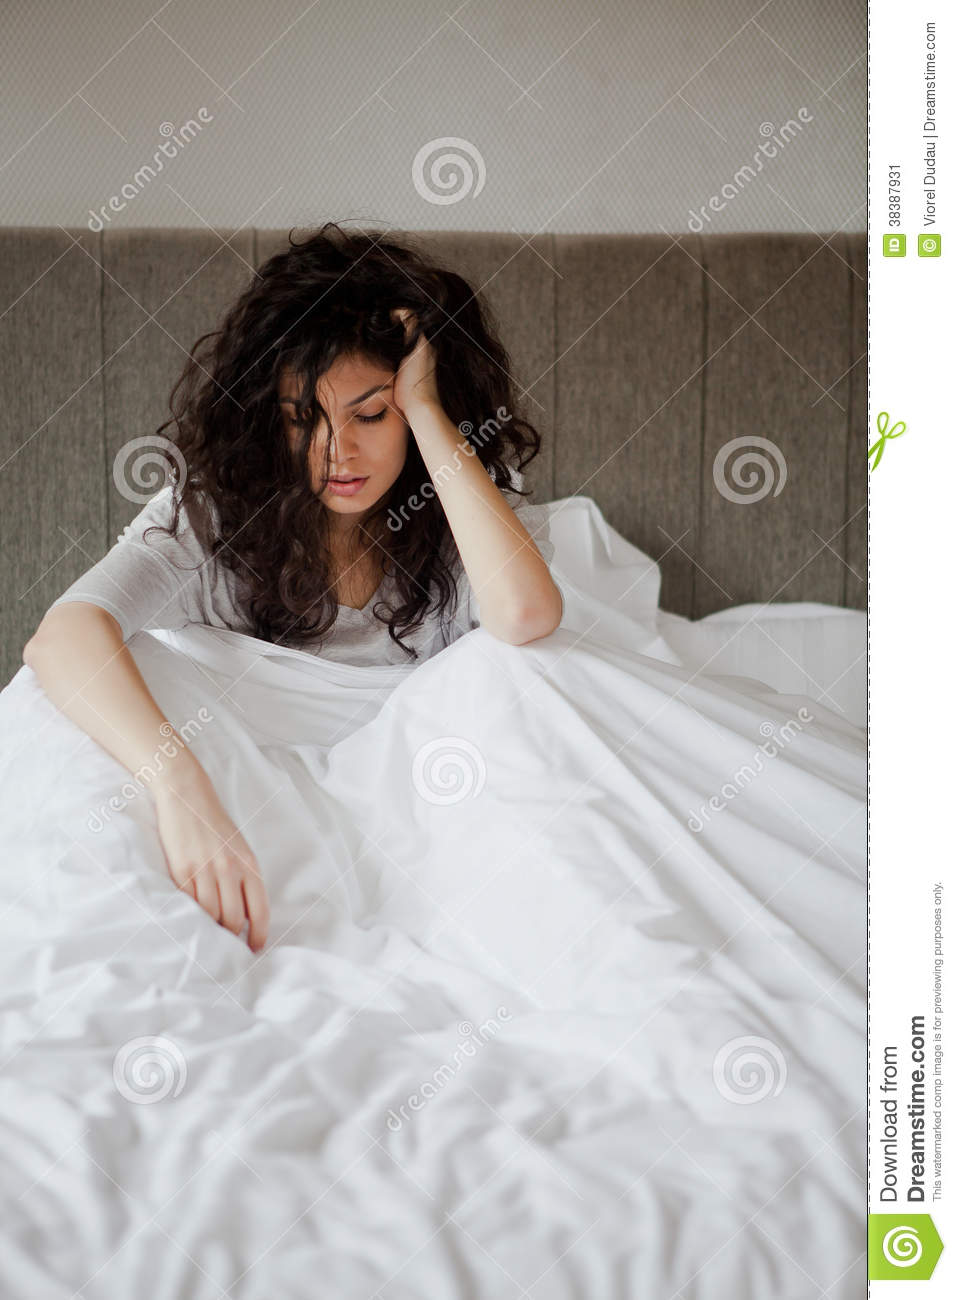 Sorrow woman with hurt feelings in bed inside bedroom in the morning